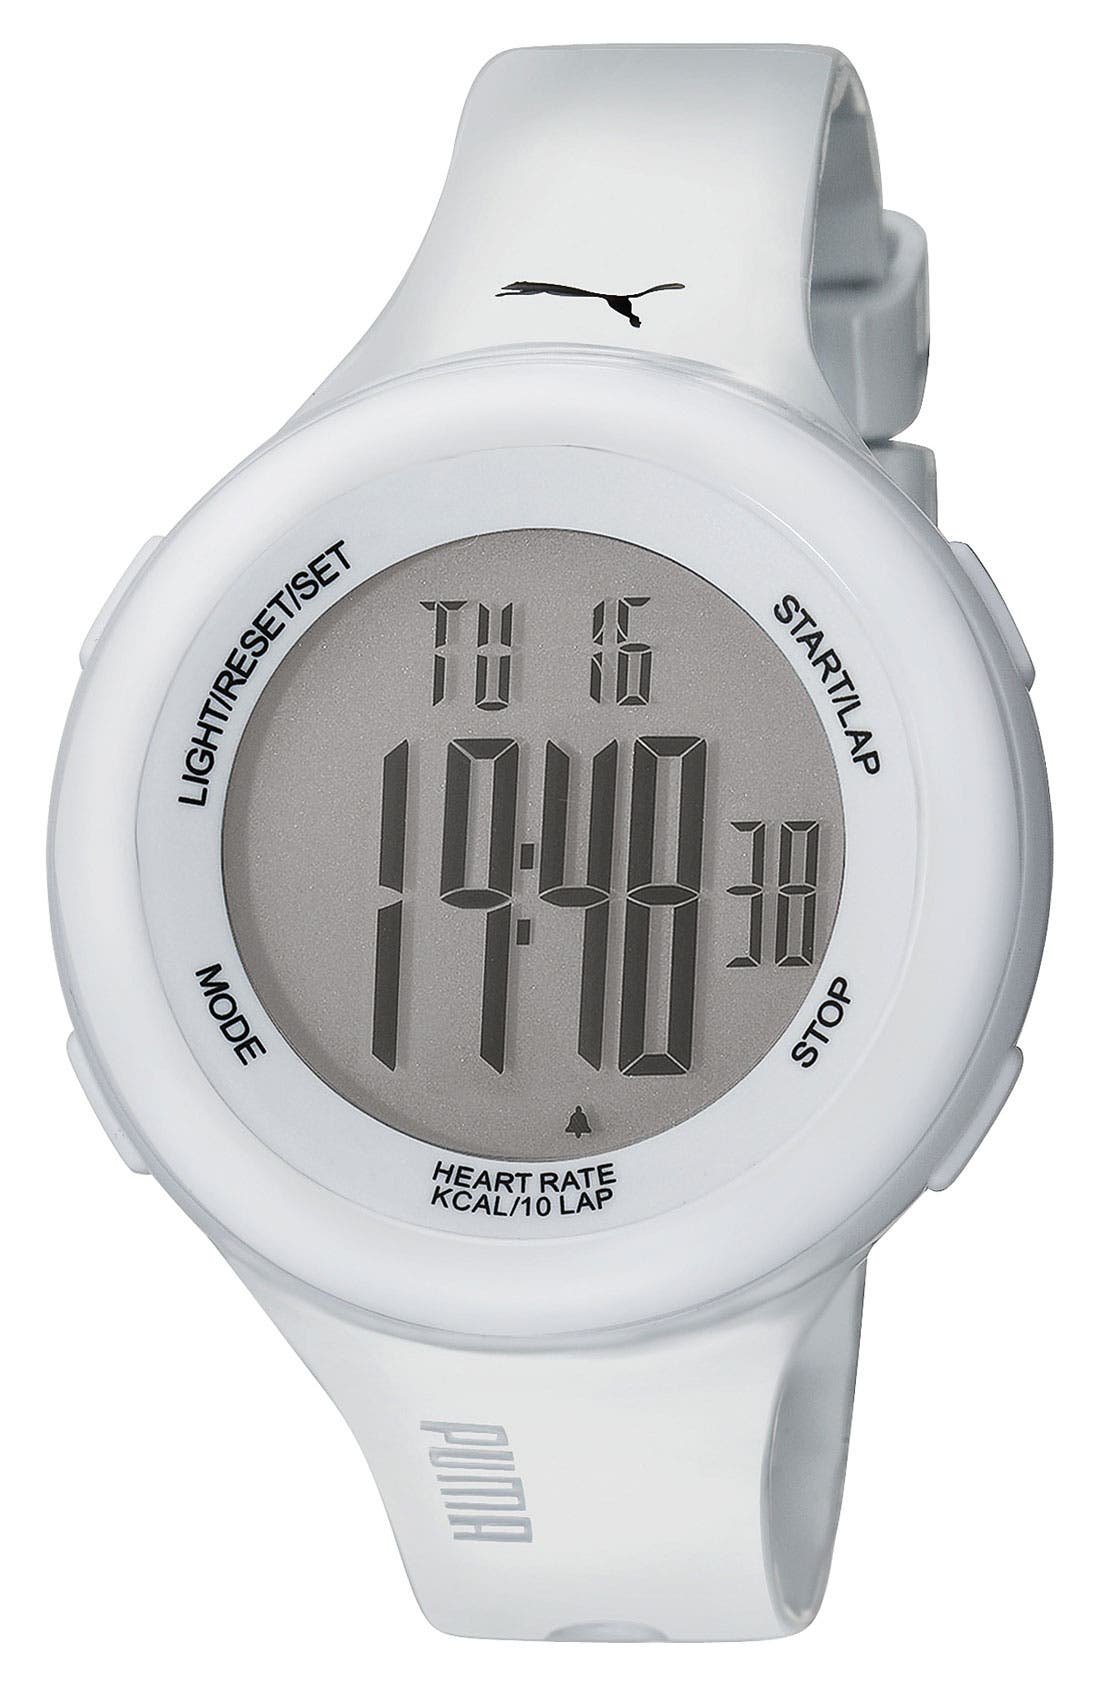 Alternate Image 1 Selected - PUMA 'Fit' Heart Rate Monitor Watch, 38mm